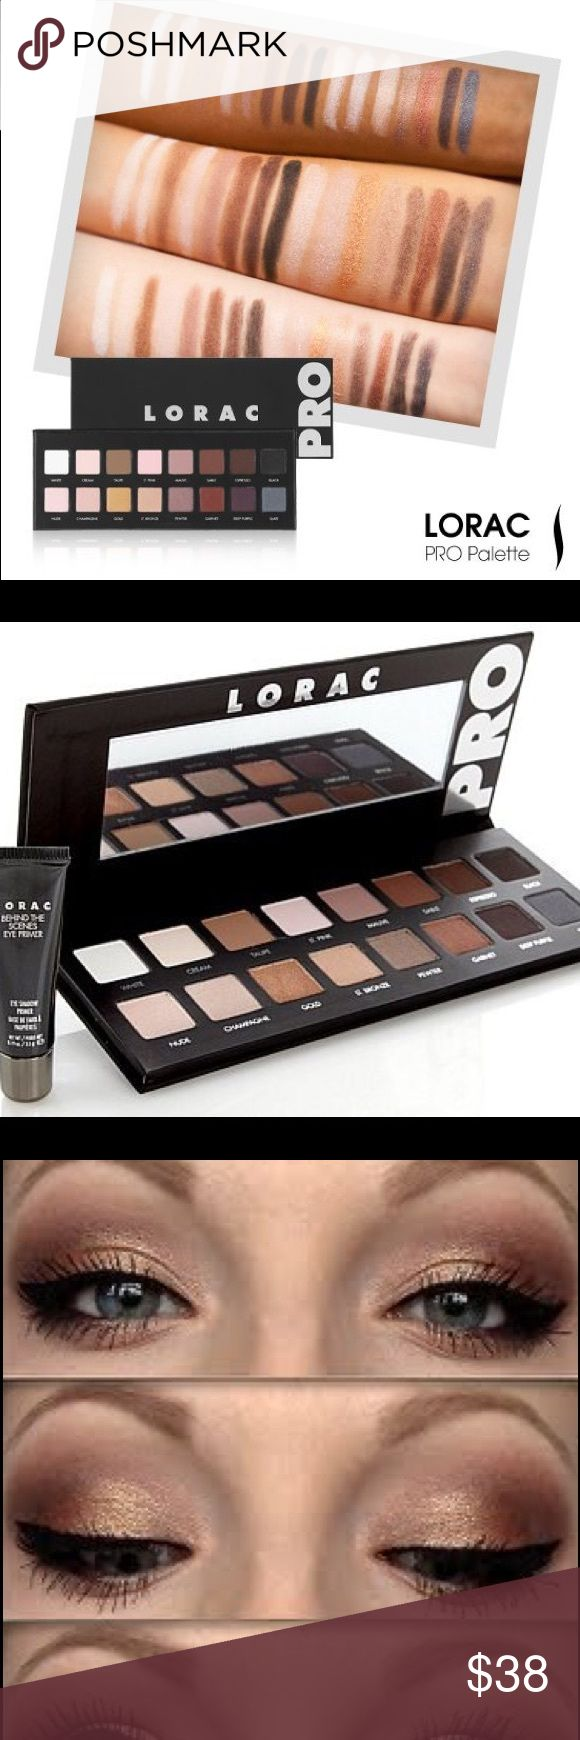 LORAC- PRO Palette!!  Brand New and Authentic as always!!  This is LORAC's number #1 selling palette!! It's extremely pigmented and looks great on ALL skin tones!!  This palette also comes with a mini - Behind The Scenes Eye Primer!  Gifts with Purchase!  Bundle and SAVE!! LORAC Makeup Eyeshadow